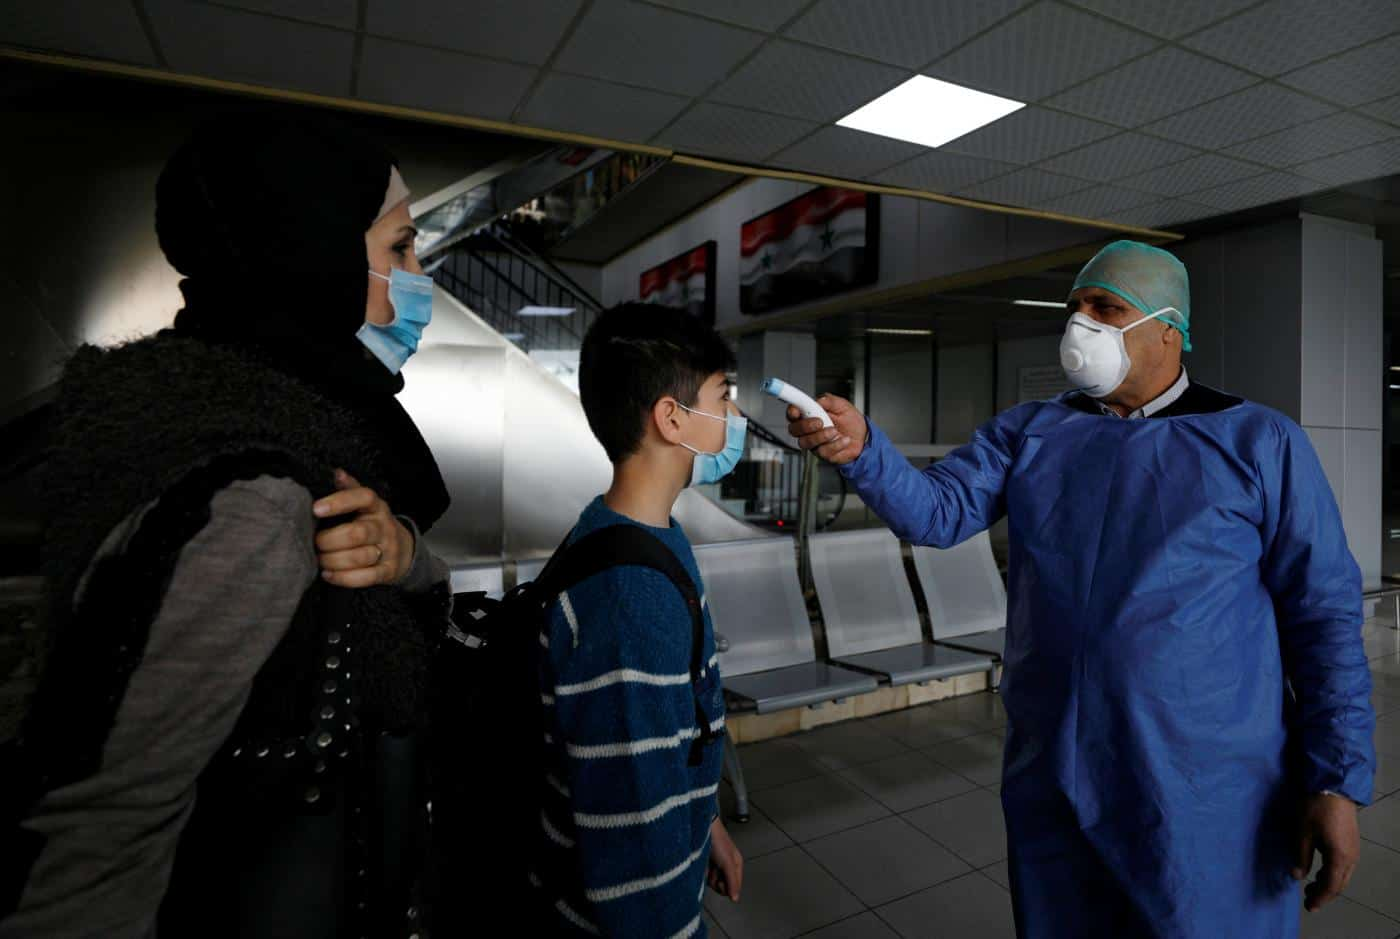 Coronavirus Pandemic: Middle East and North Africa Update